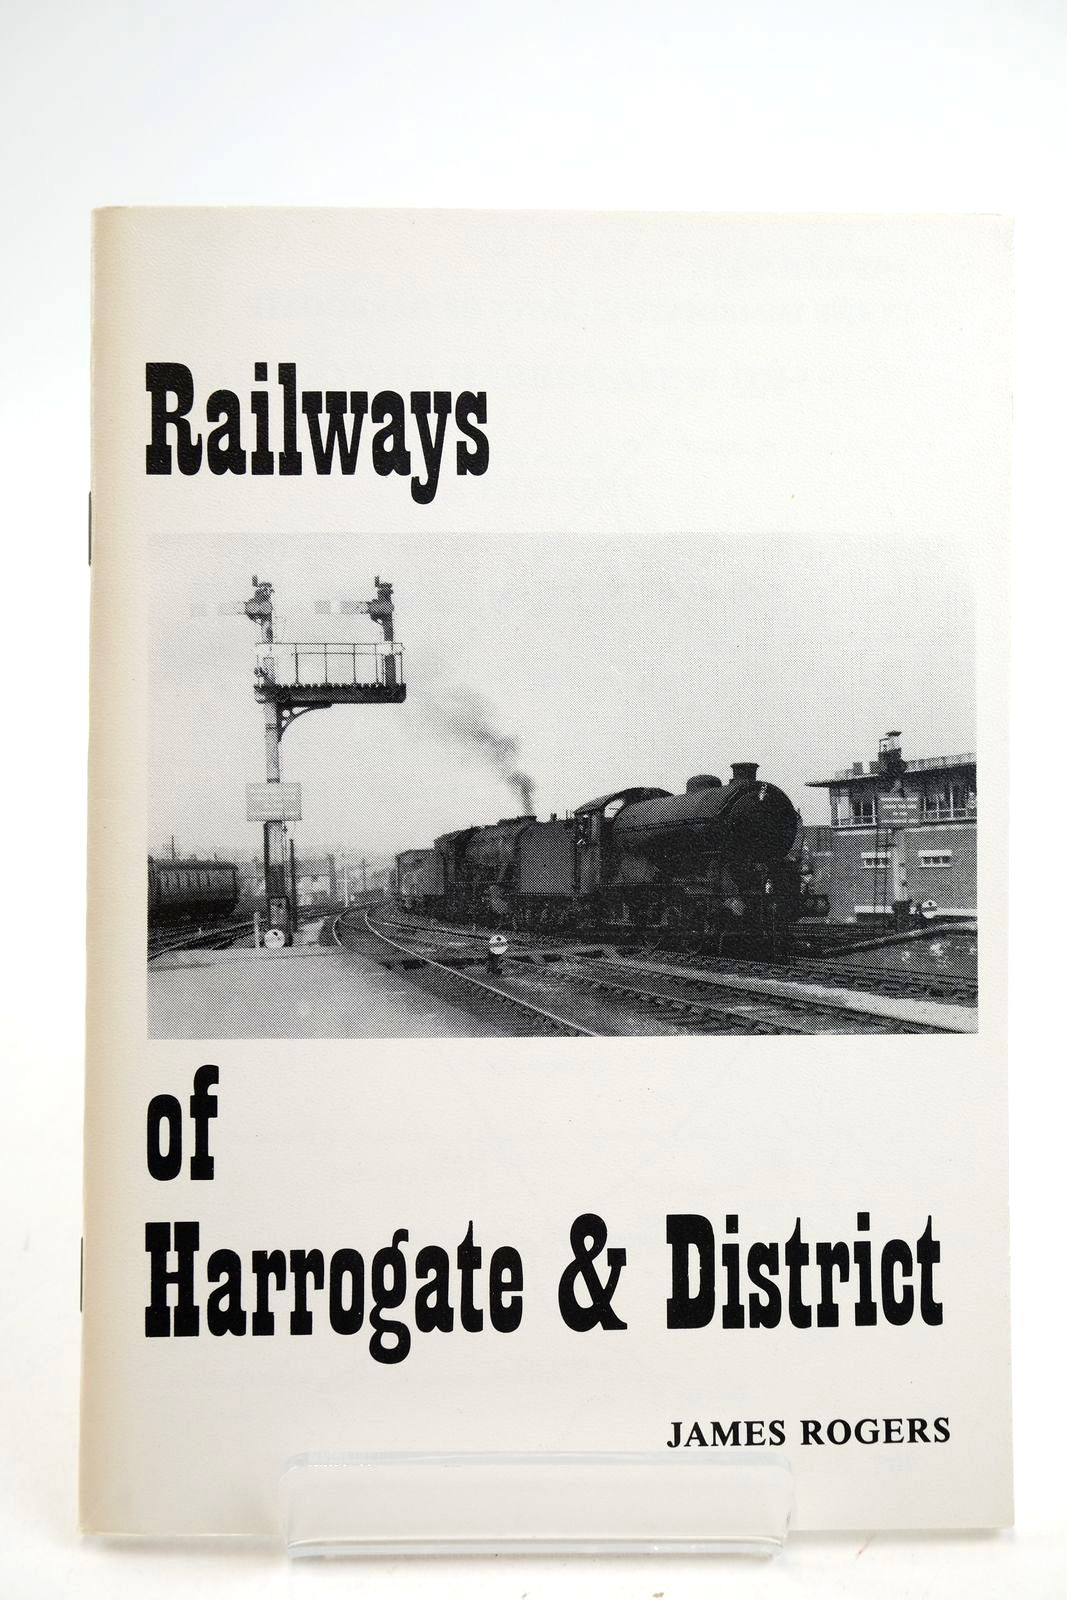 Photo of RAILWAYS OF HARROGATE & DISTRICT A HISTORY